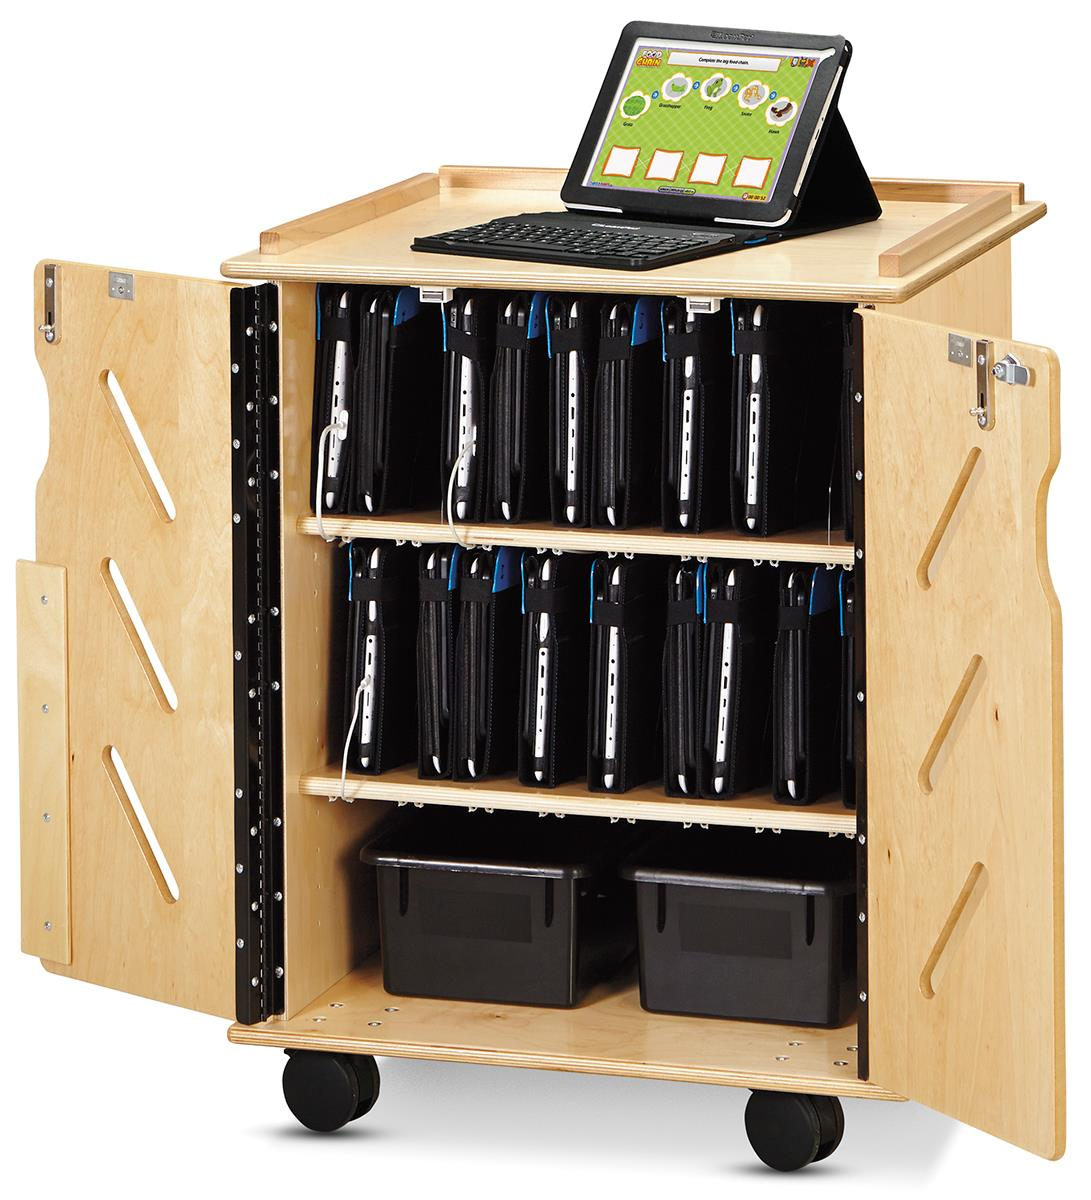 Locking Av Cabinet Multiple Device Charging Stations Mobile Wall Counter Mount